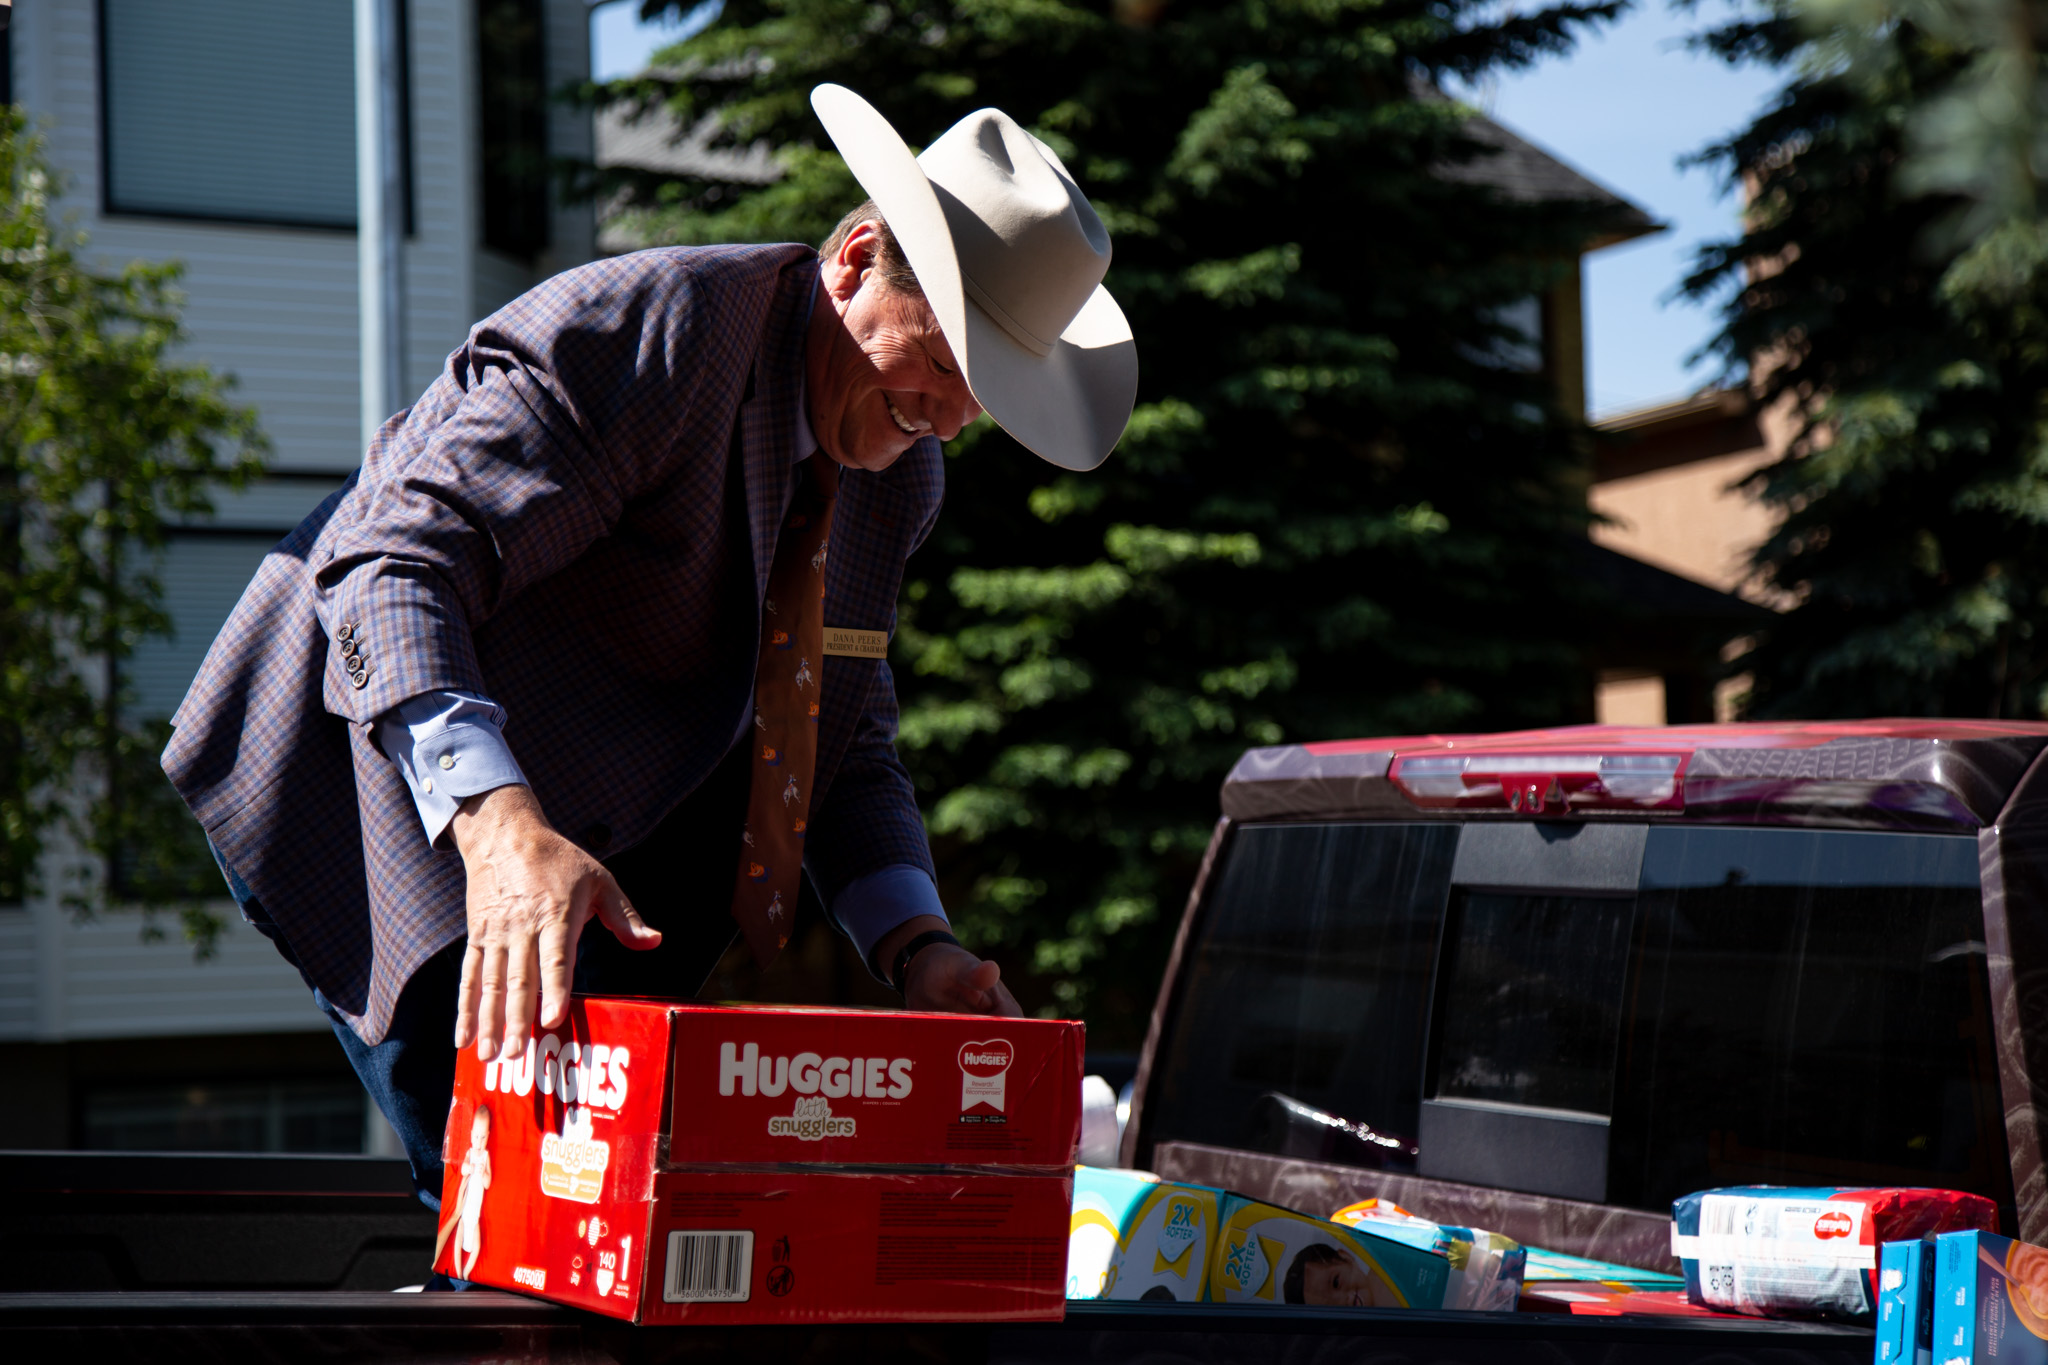 Stampede official smiling and loading a box of diapers into the back of the truck